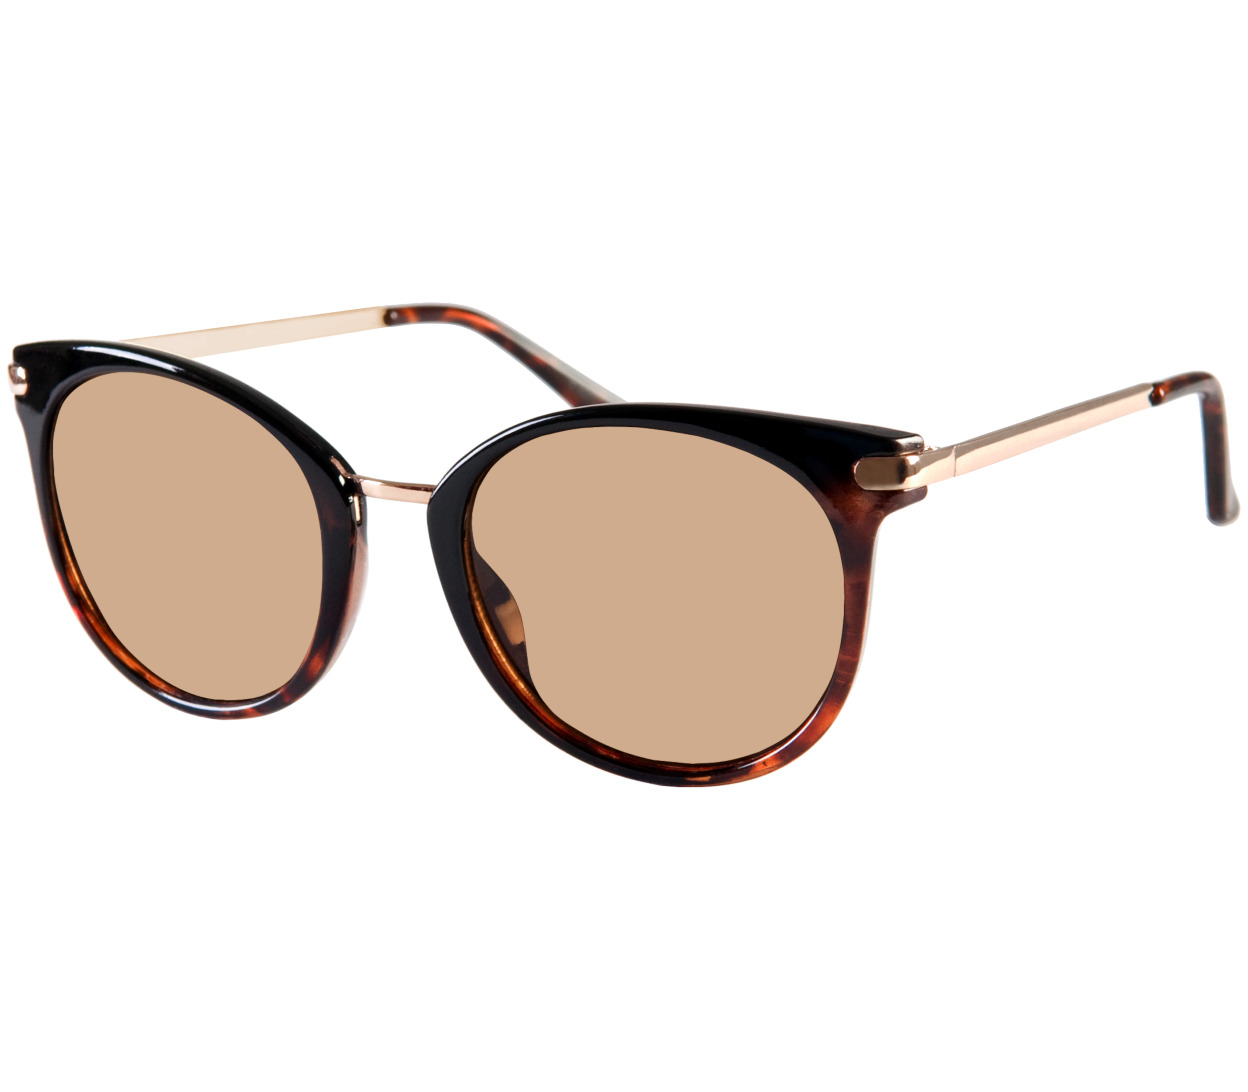 Main Image (Angle) - Vera (Two Tone) Retro Sunglasses